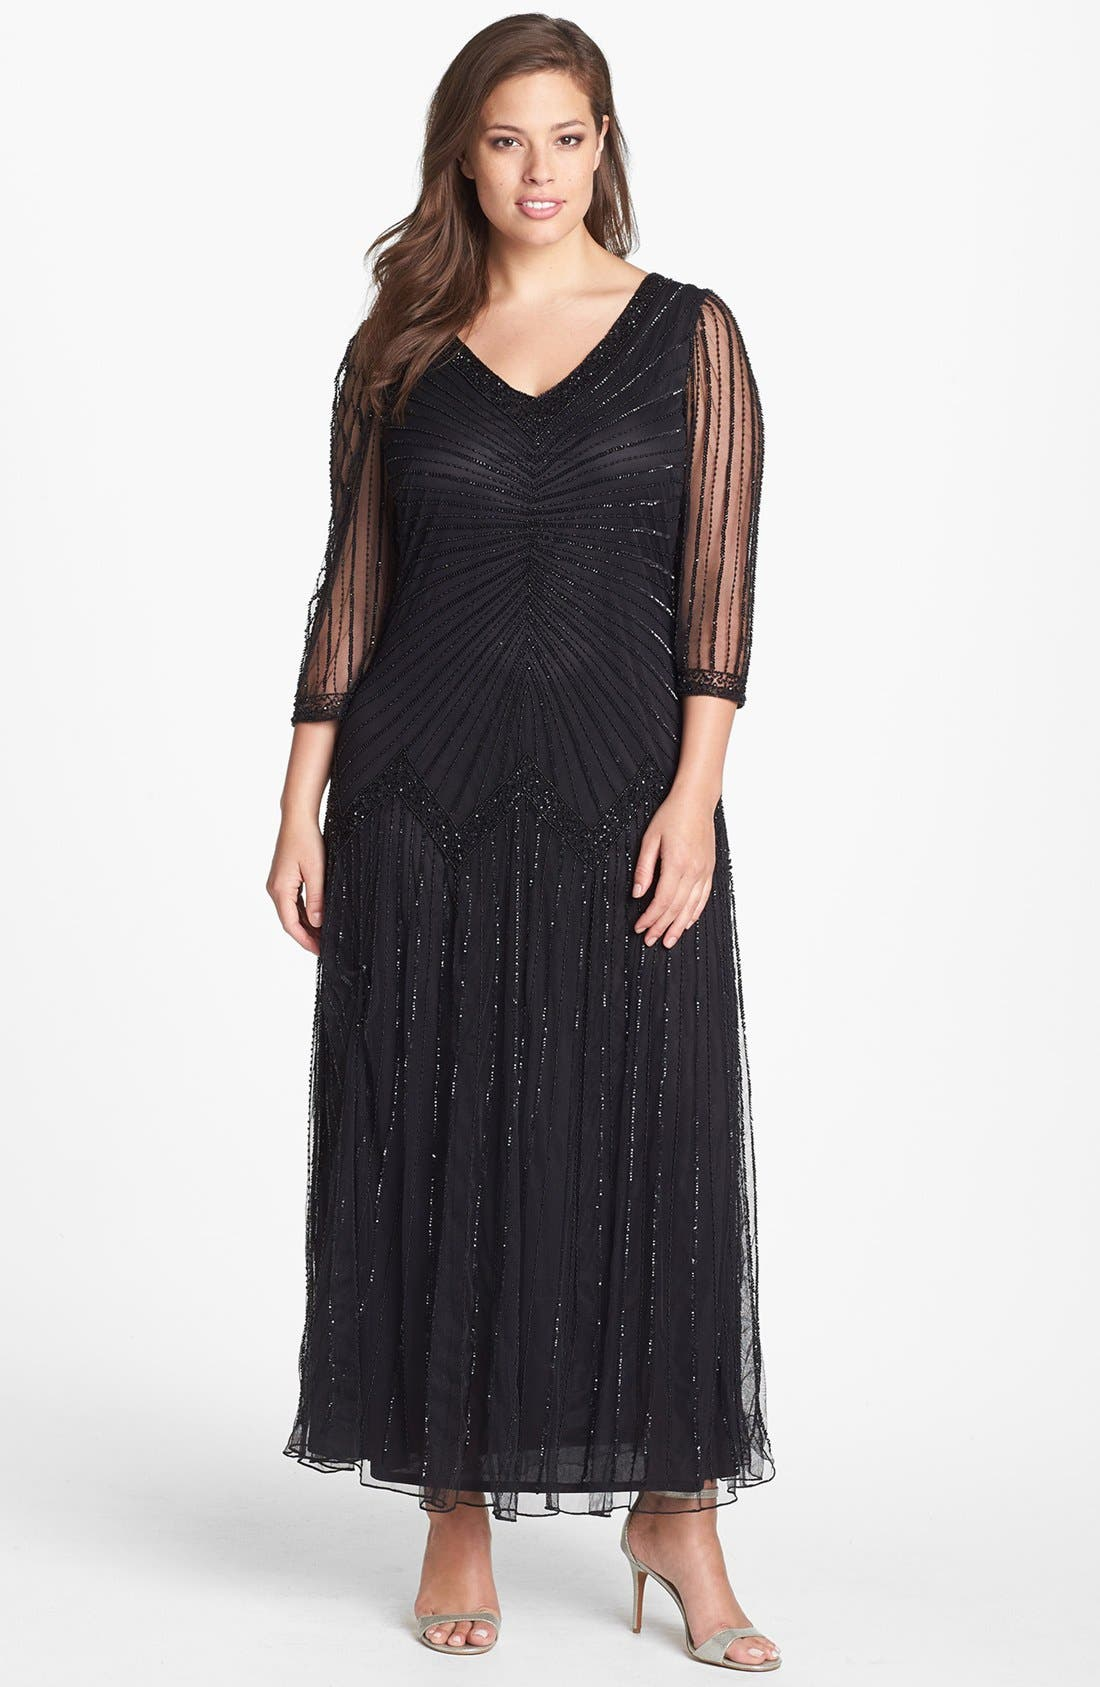 Alternate Image 1 Selected - Pisarro Nights Embellished Illusion Sleeve Mesh Gown (Plus Size)